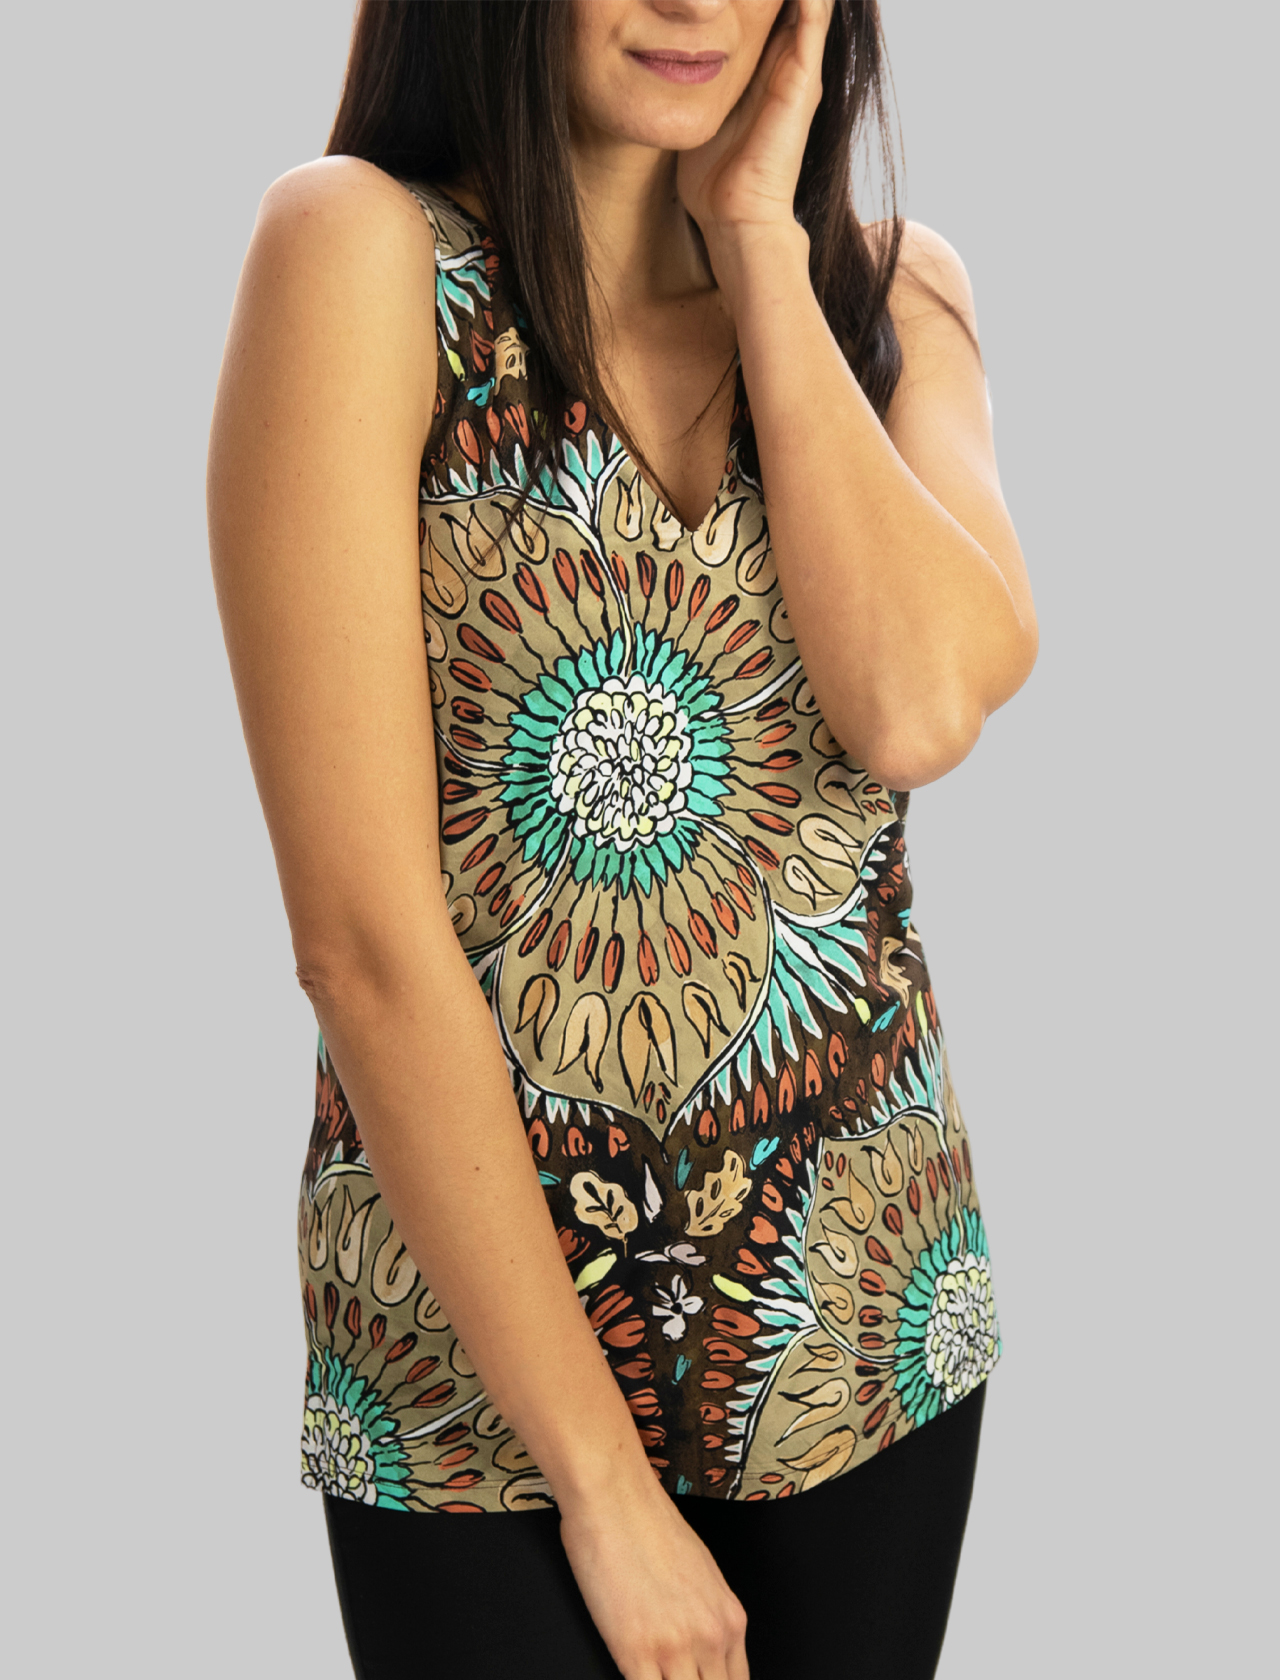 Women's Clothing Top Welcome Summer in Taupe Pattern with V-Neck Maliparmi | Shirts and tops | JP539170407B4067